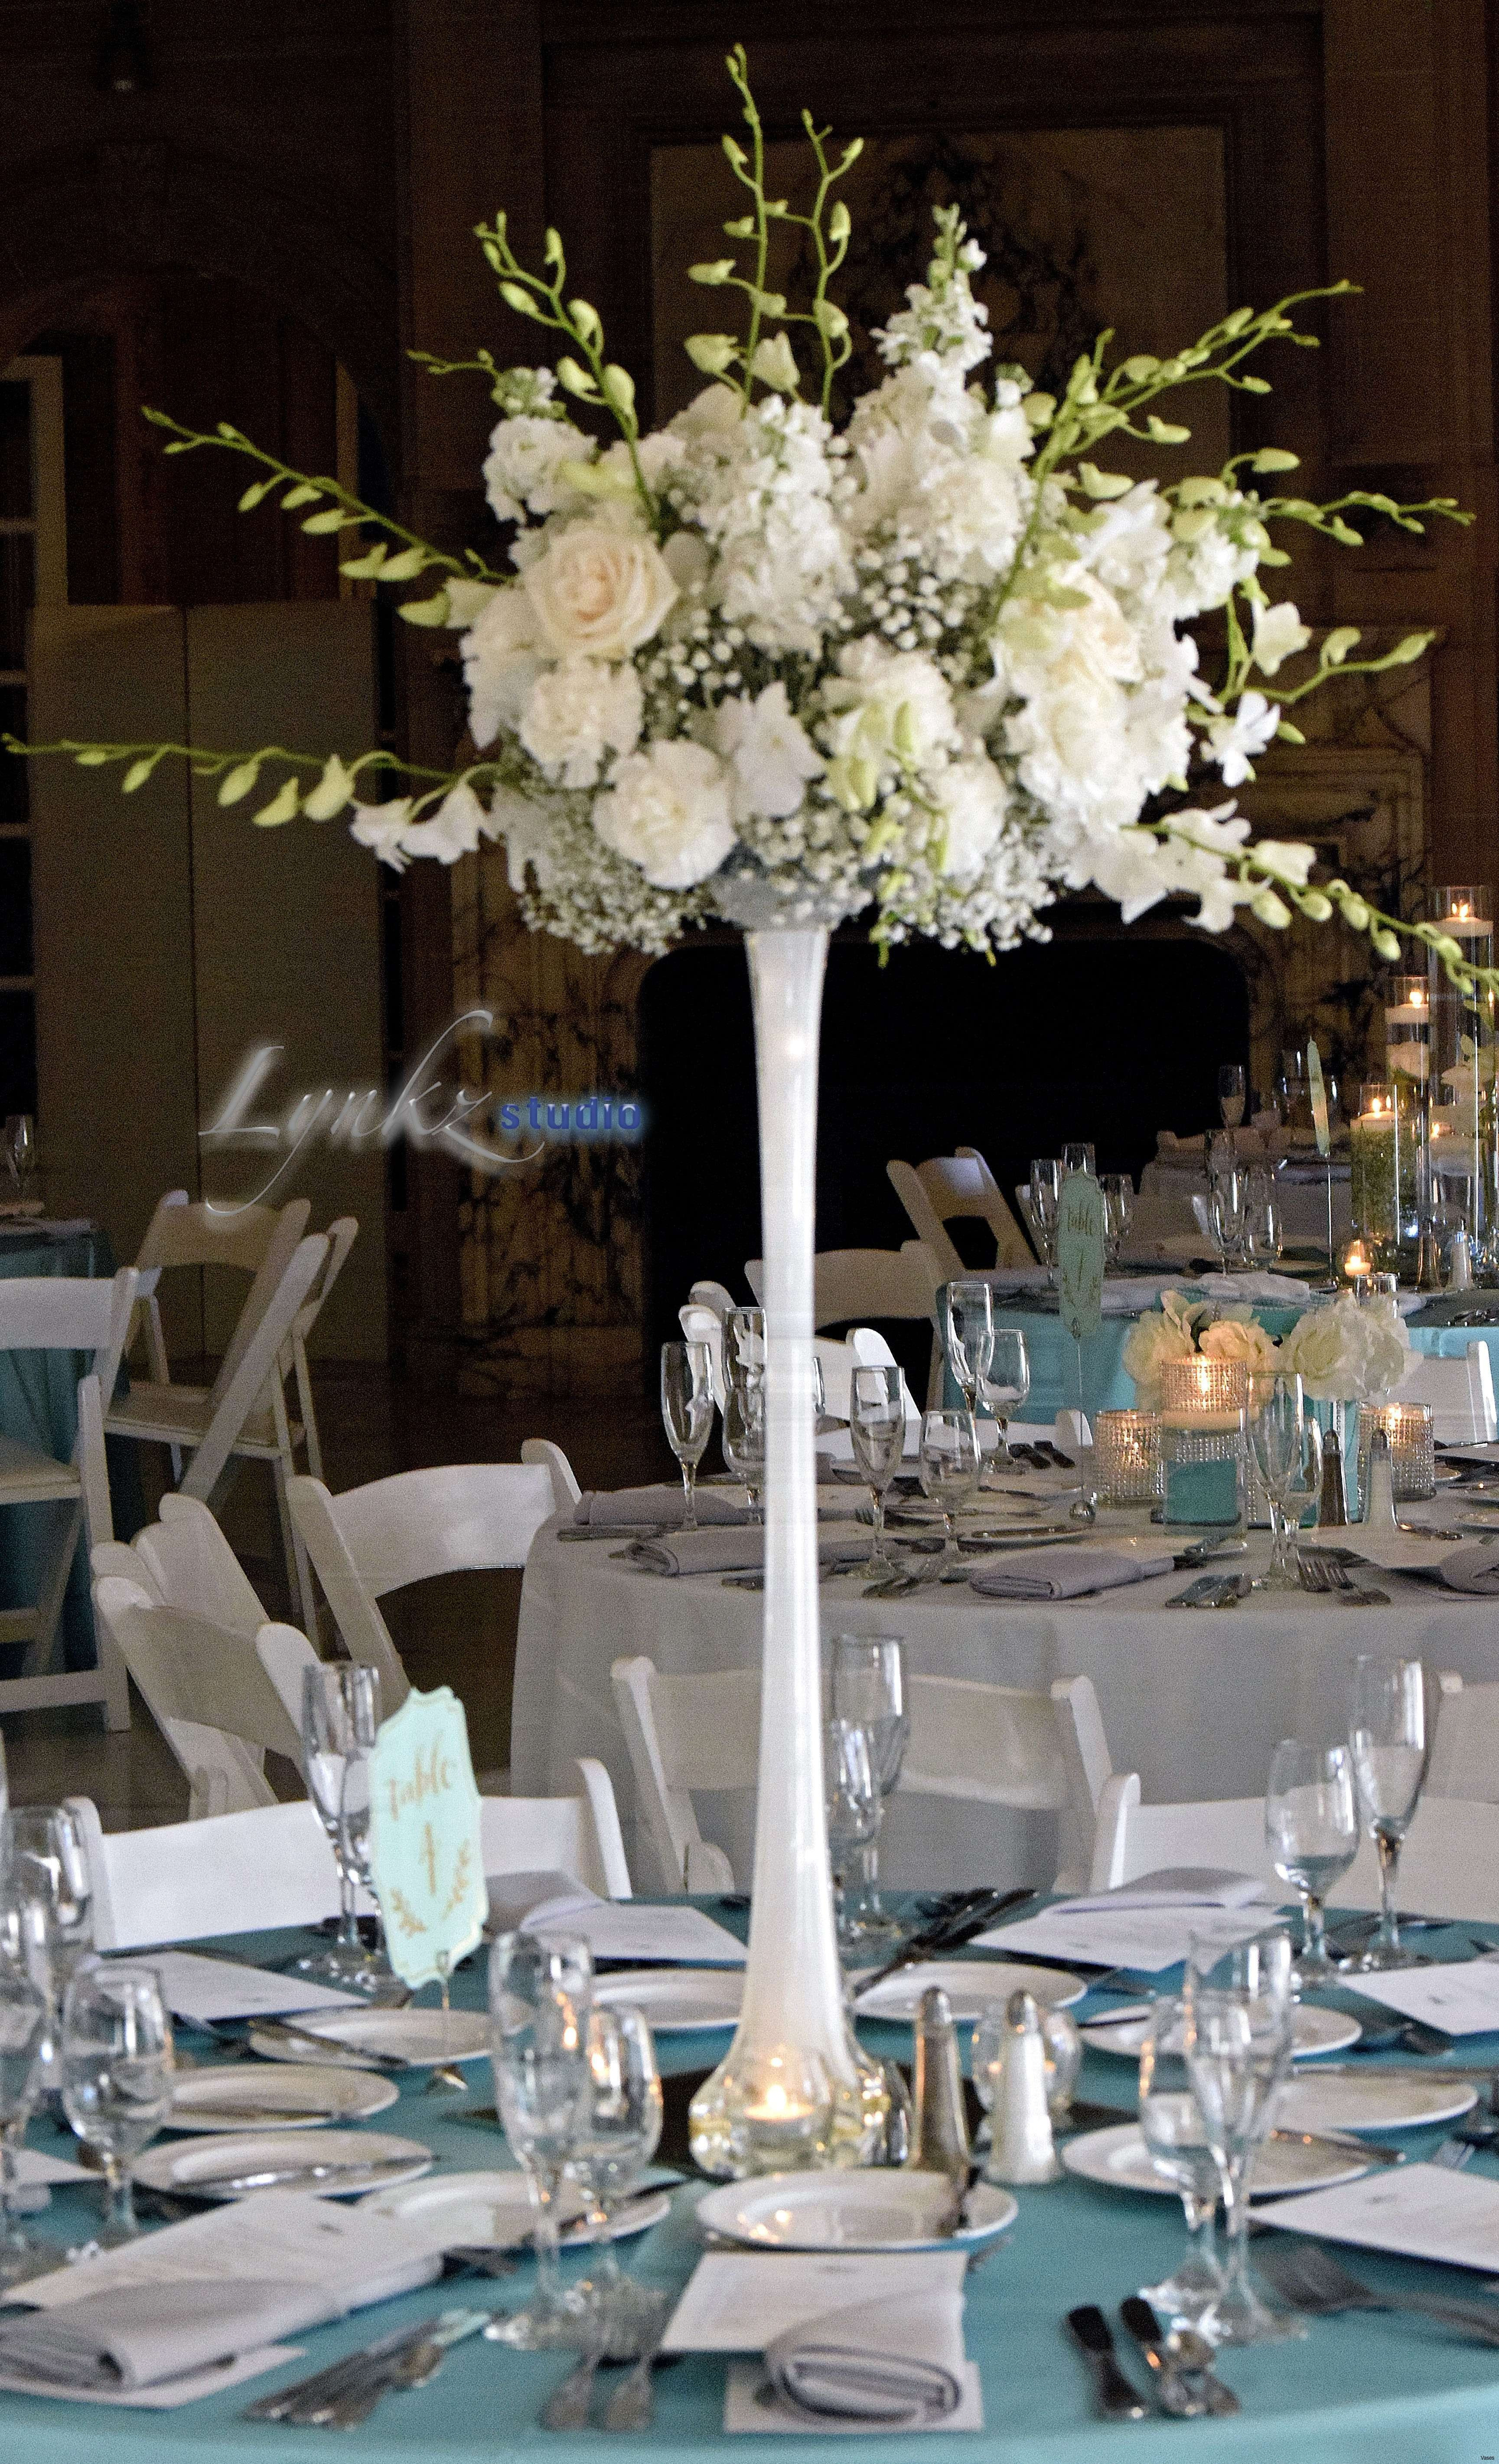 12 Spectacular Tall Blue Floor Vase 2021 free download tall blue floor vase of home decor vases valid vases eiffel tower vase lights hydrangea with inside home decor vases valid vases eiffel tower vase lights hydrangea with grass vasei 0d scheme